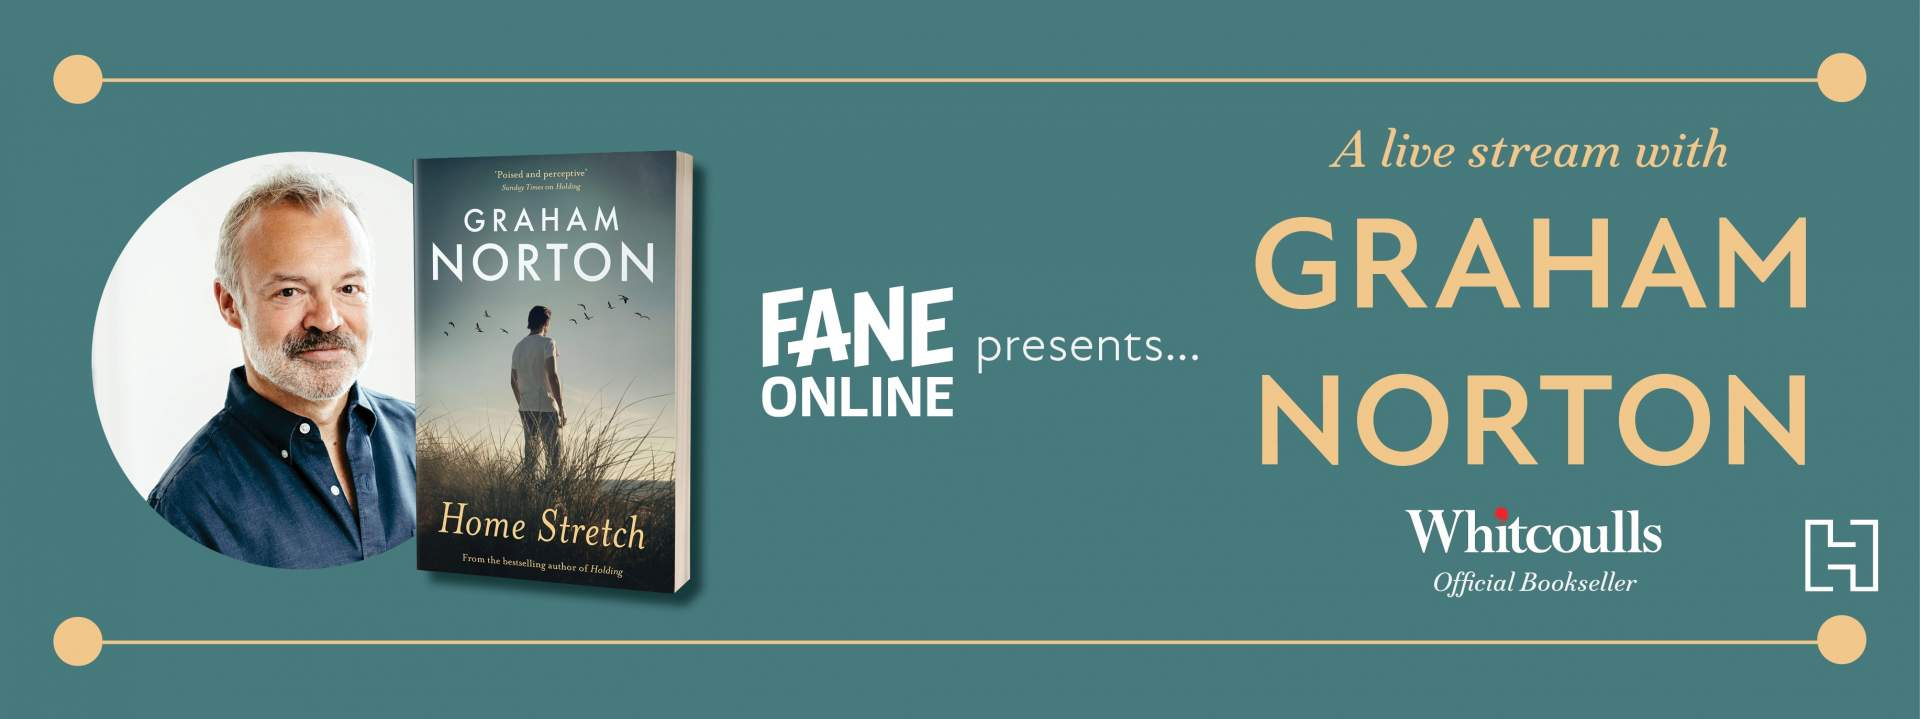 Fane Online Presents Graham Norton_HNZ banner